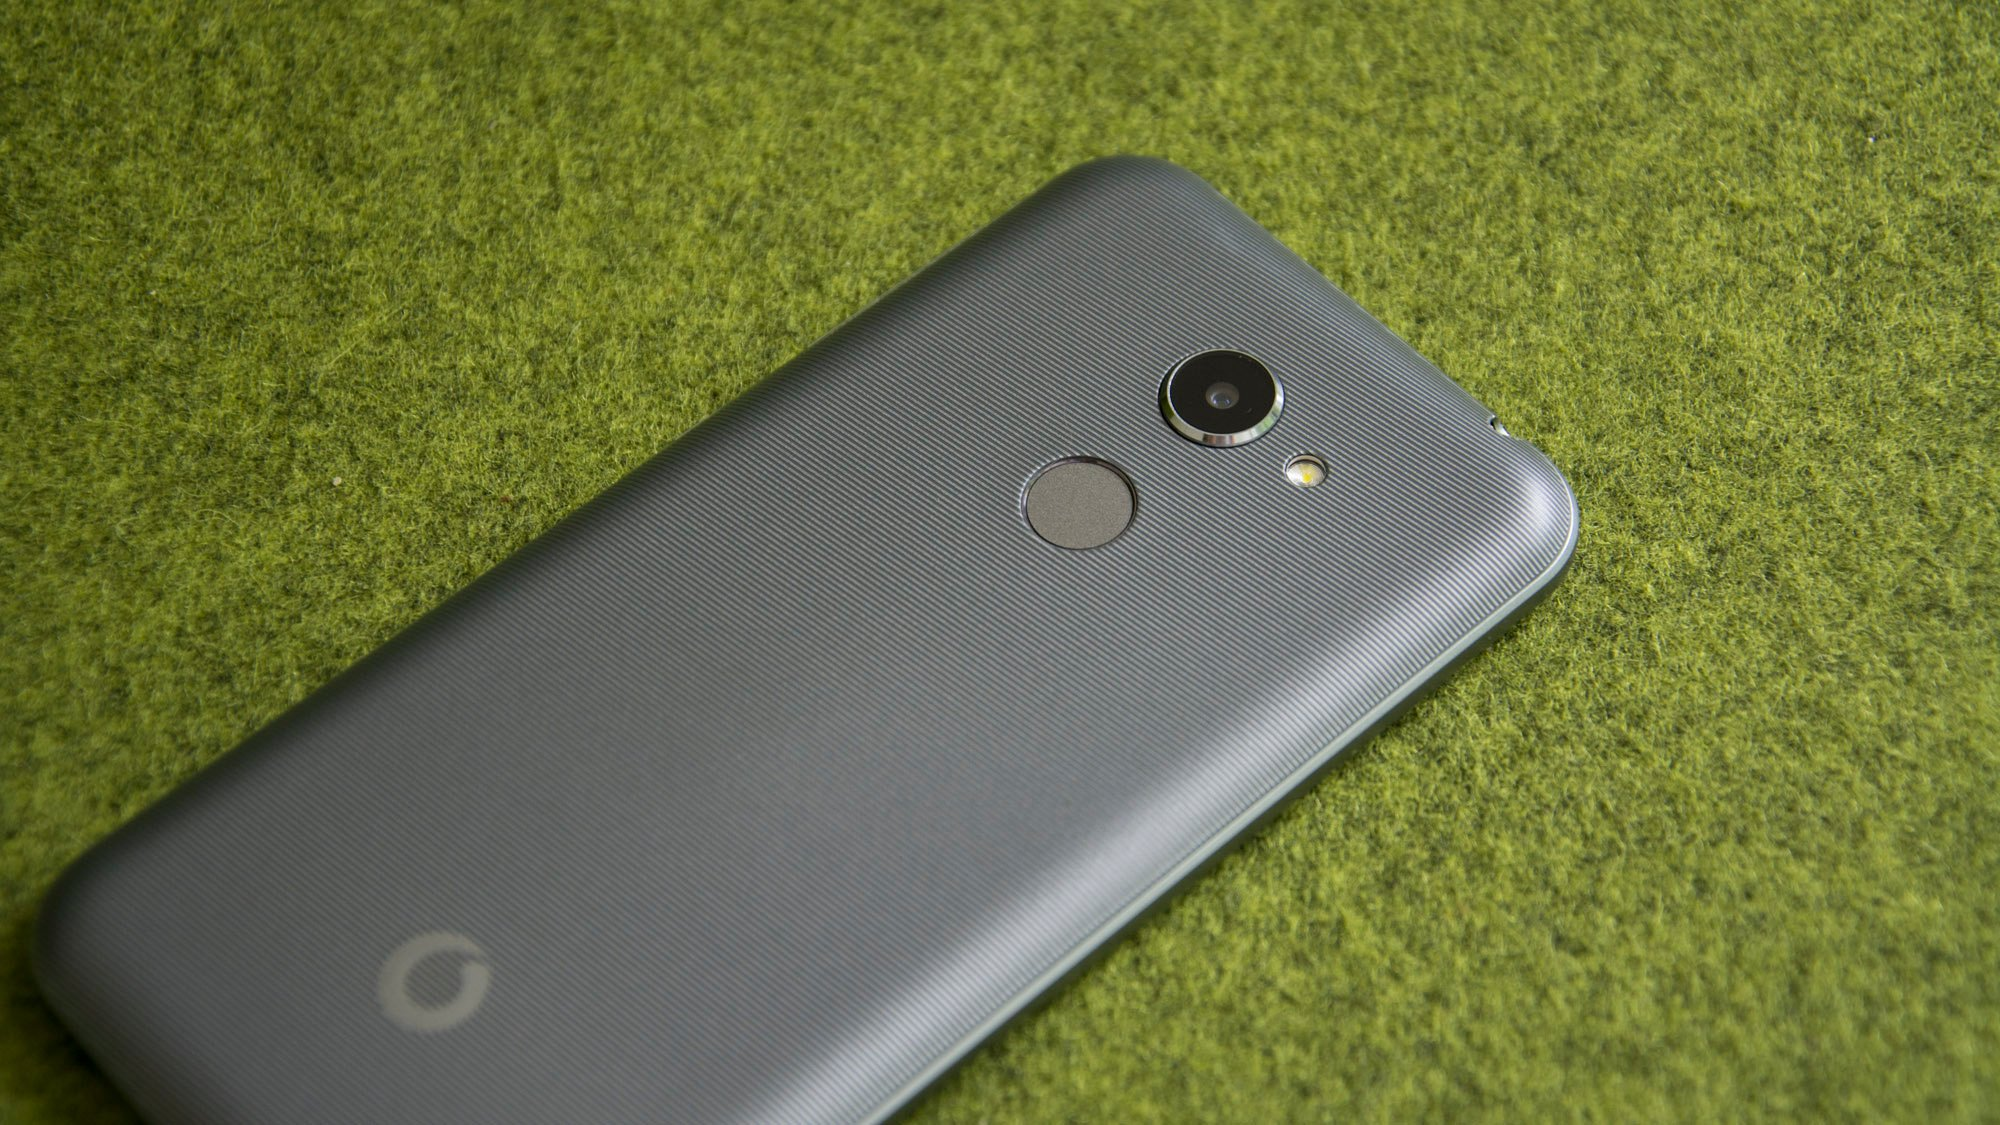 Vodafone Smart N8 review: Can it live up to the Vodafone